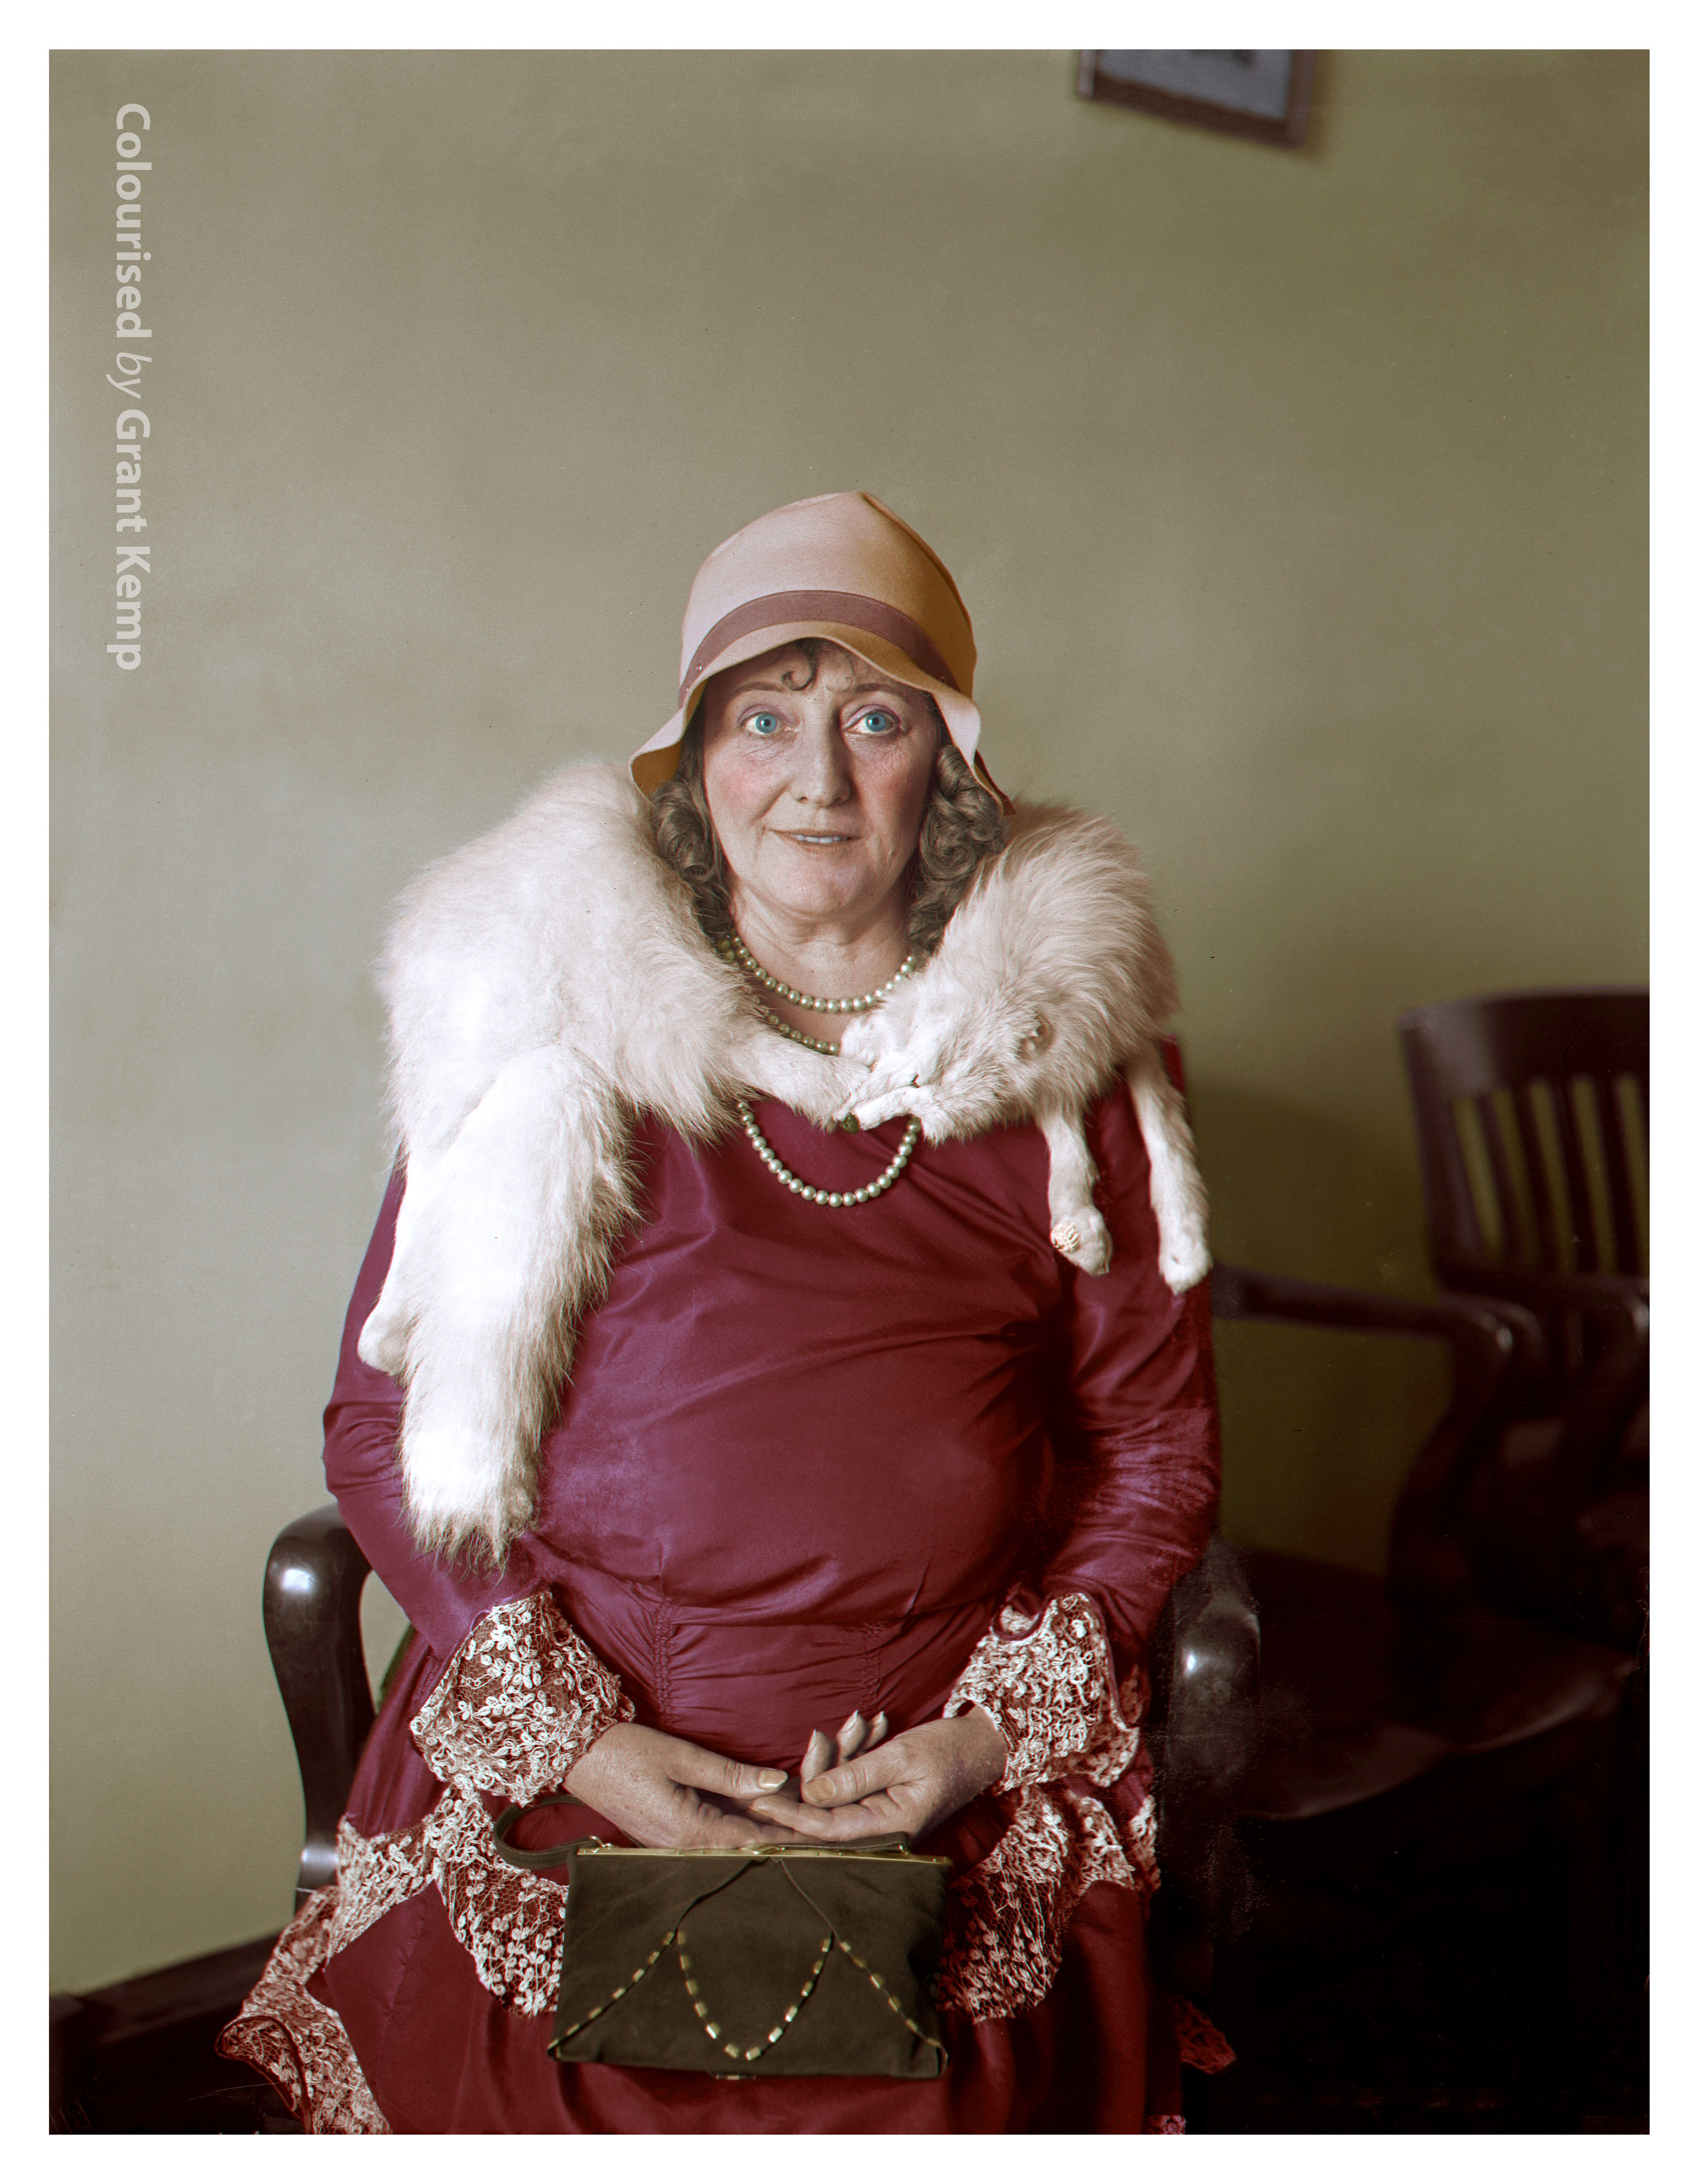 Walburga Dolly Oesterreich Was An American Housewife Married To